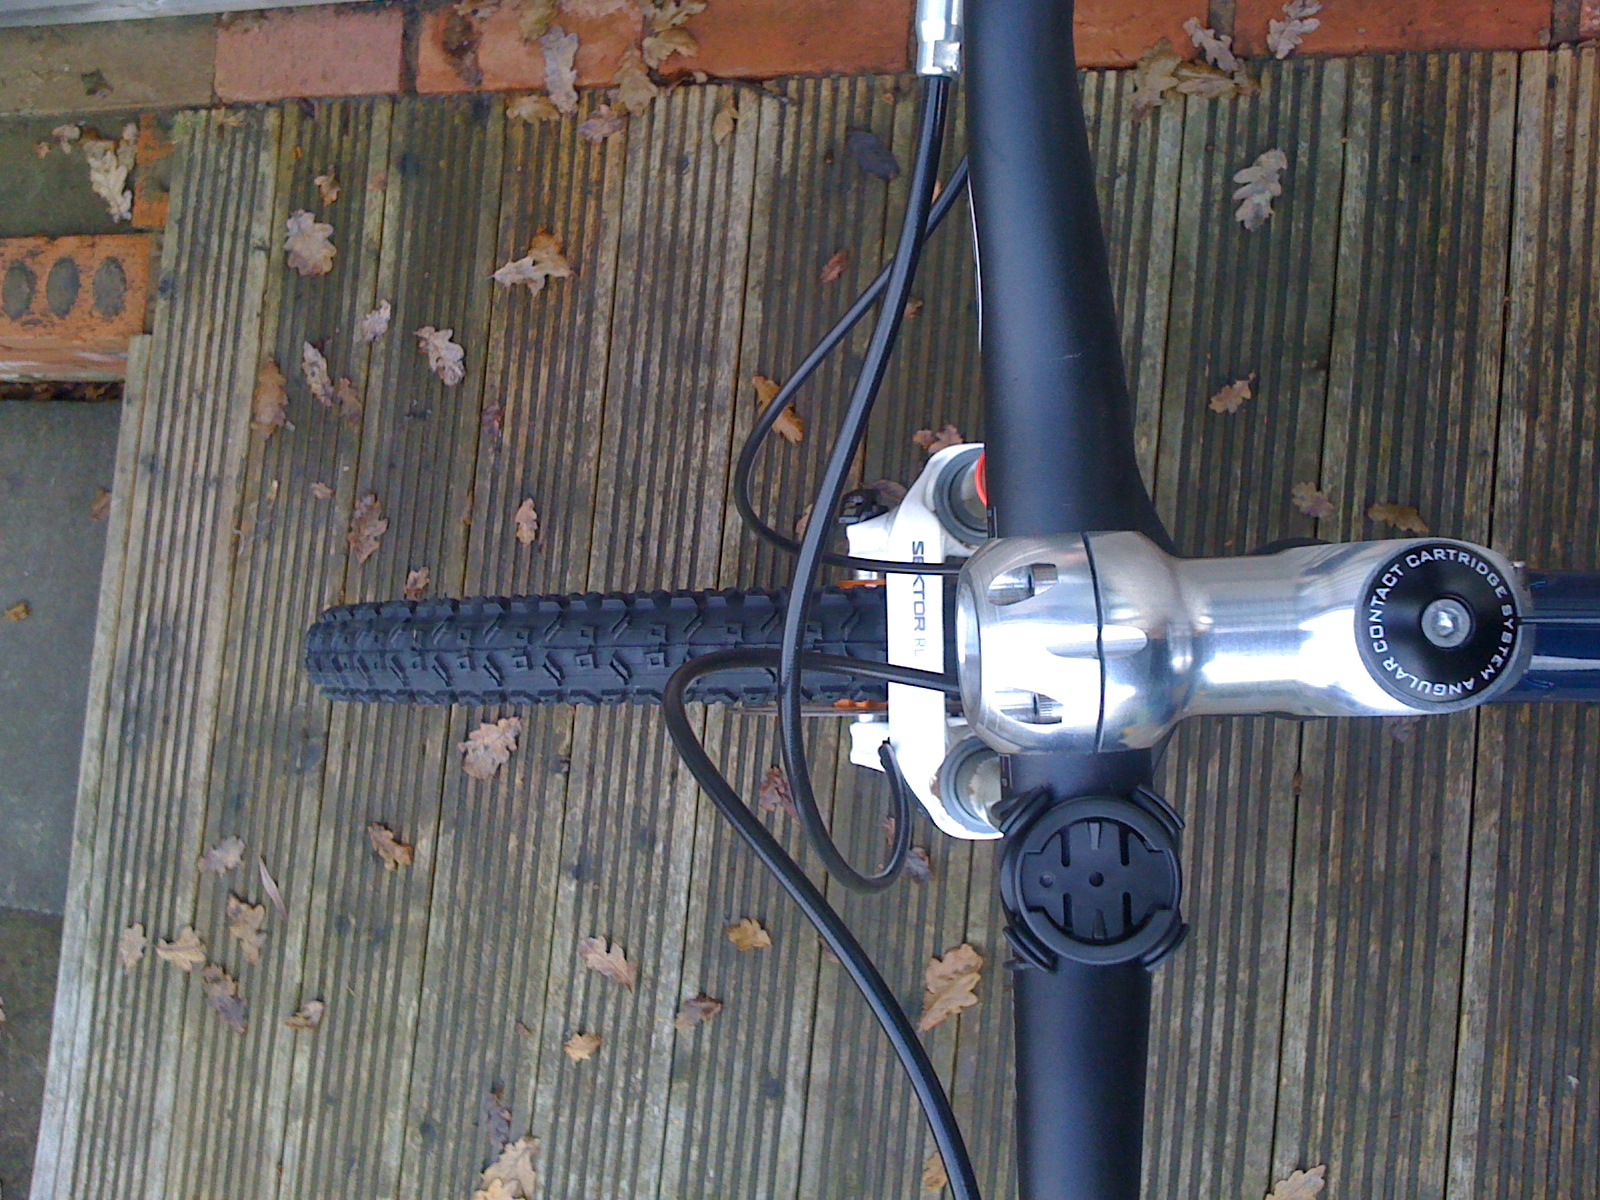 Oneone and rideworks vertical stot